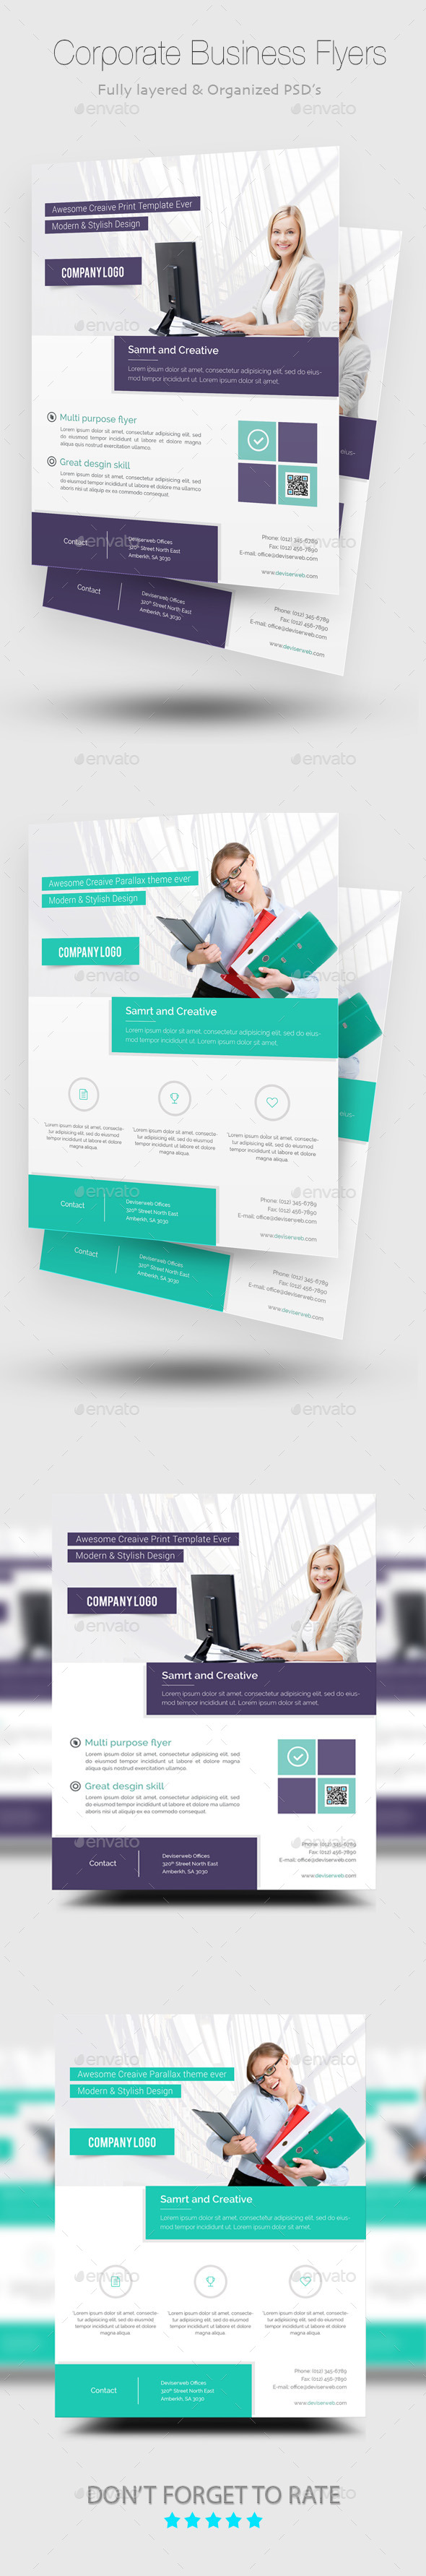 GraphicRiver Corporate Business Flyer Templates 8970624